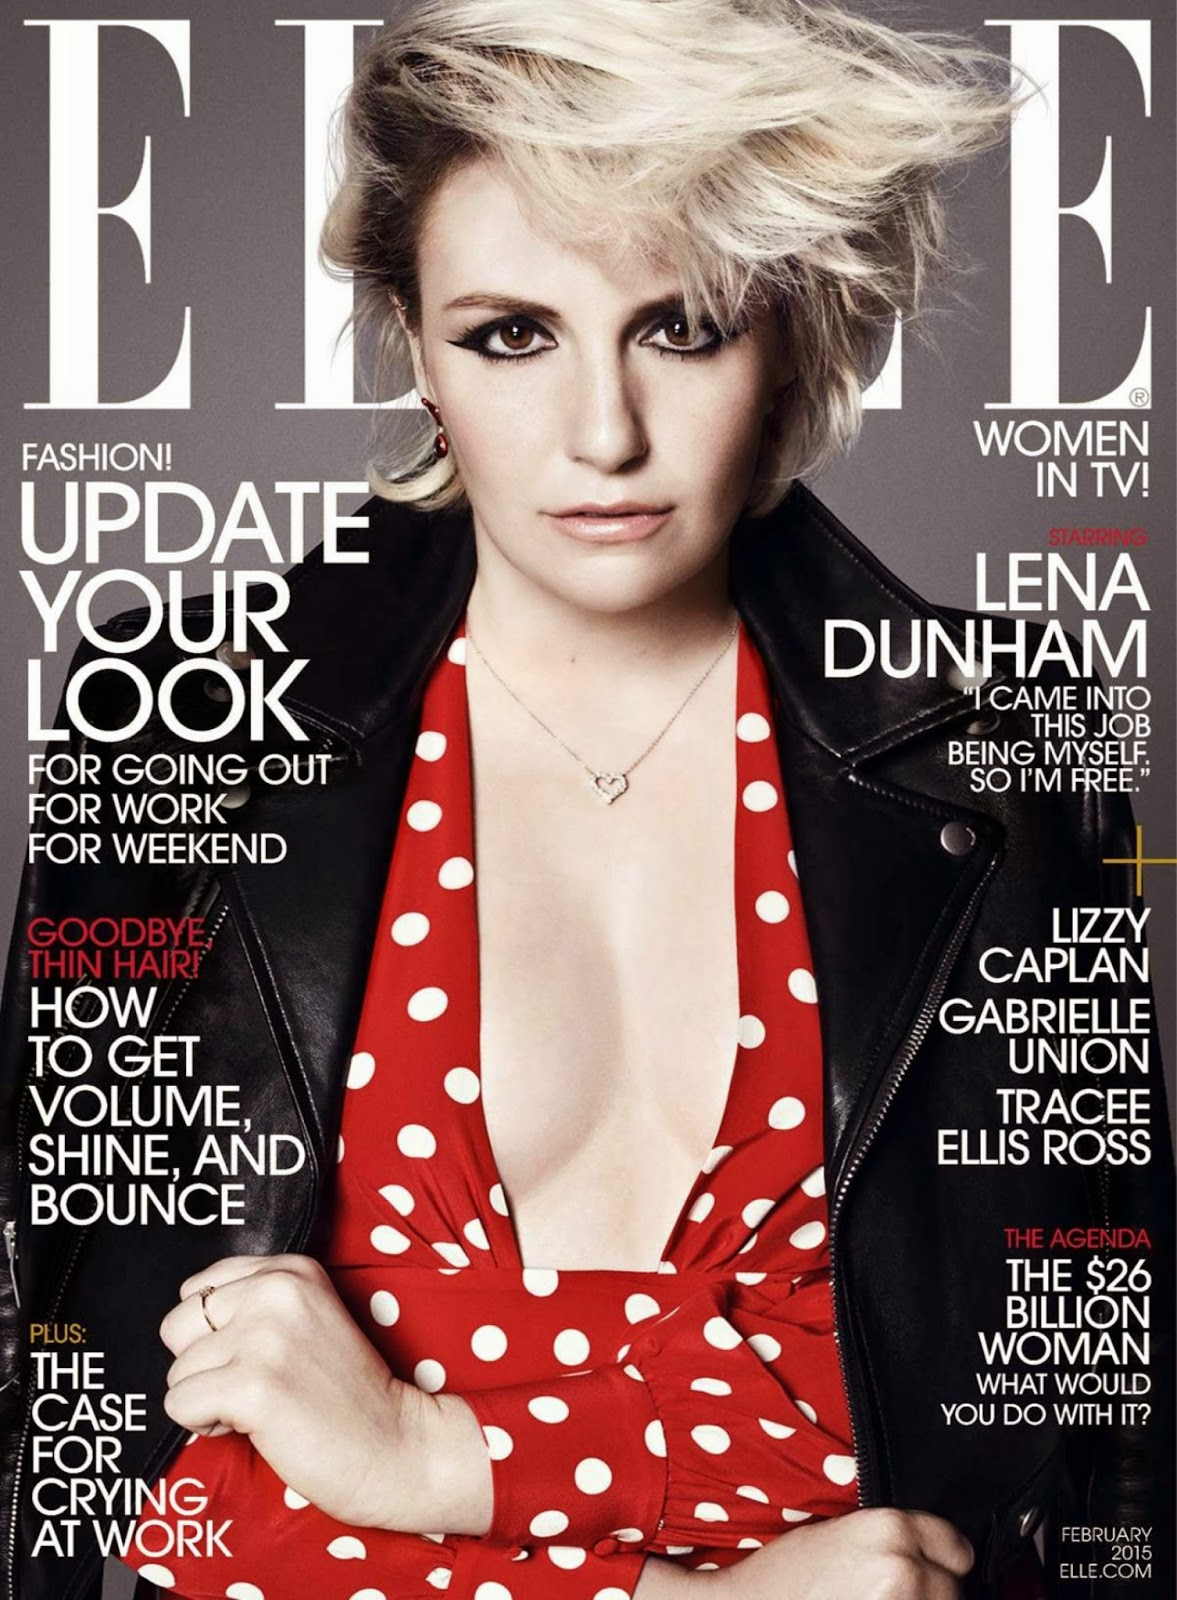 Lena Dunham by Paola Kudacki for Elle US, February 2015